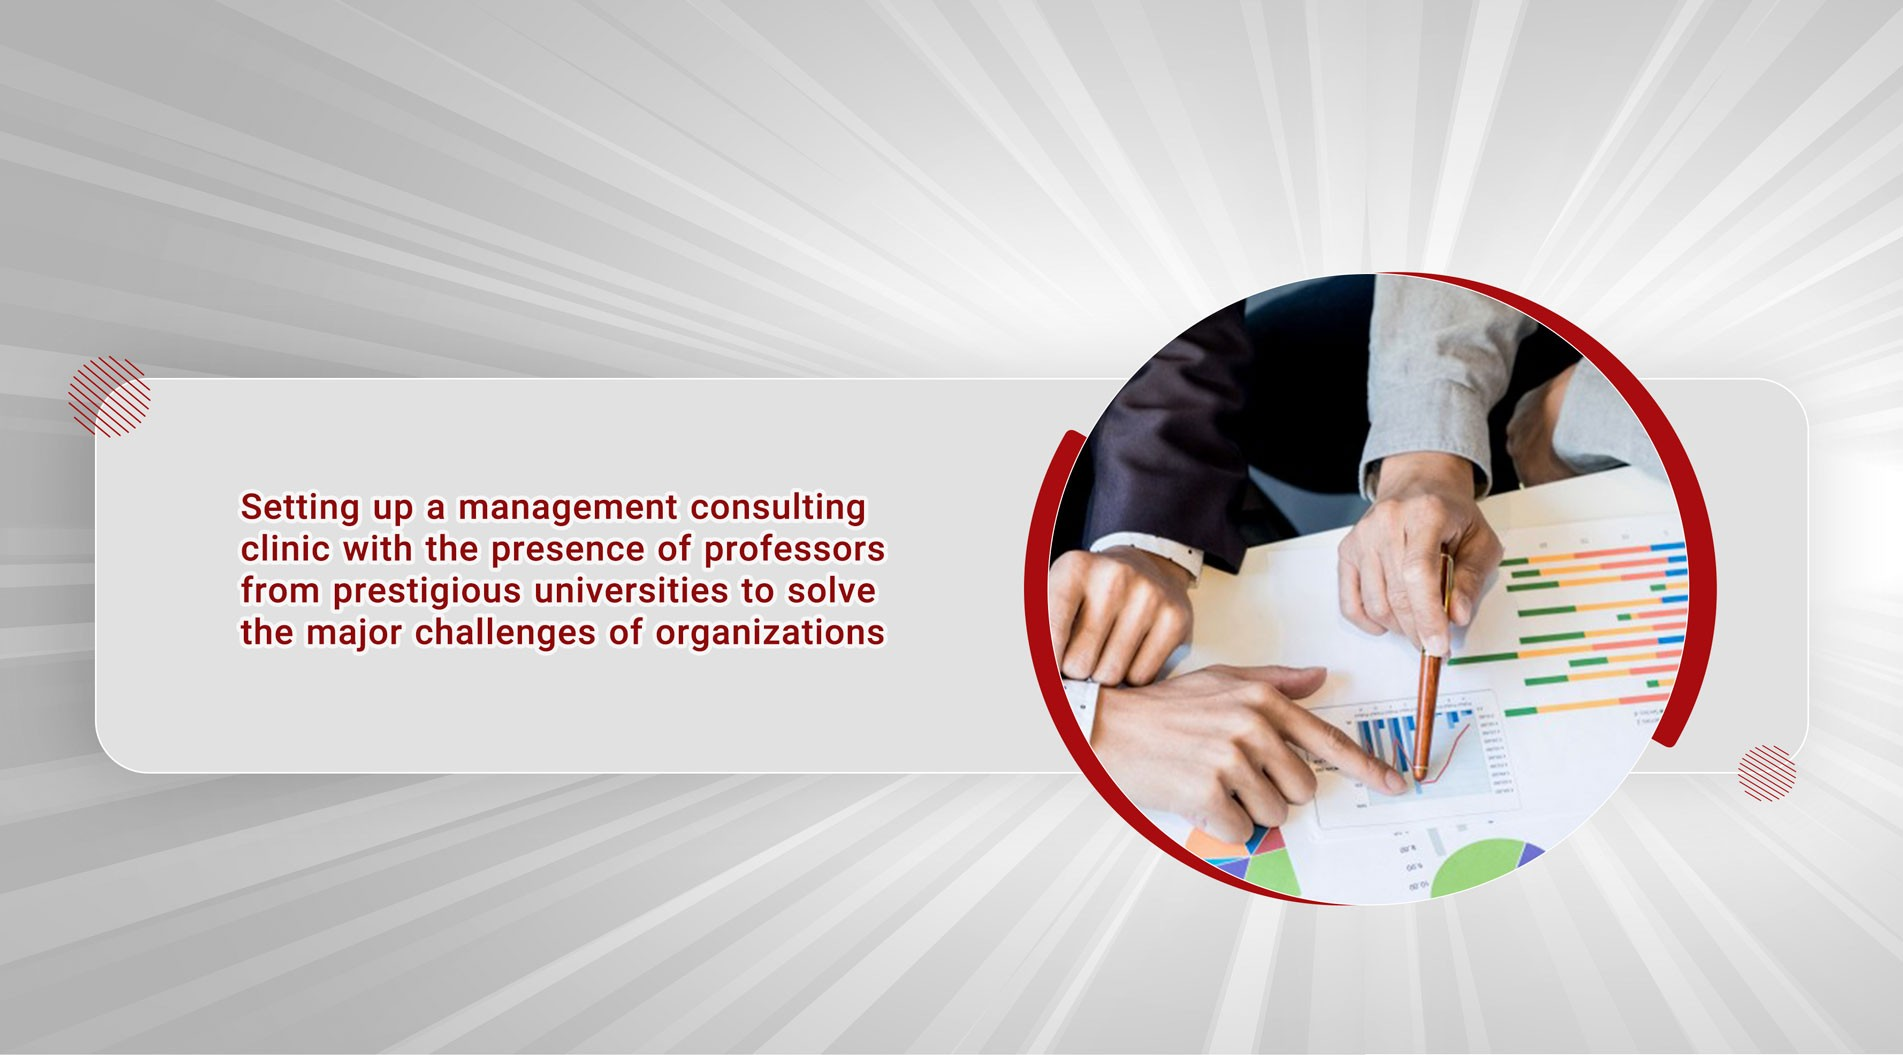 Setting up a management consulting clinic with the presence of professors from prestigious universities to solve the major challenges of organizations